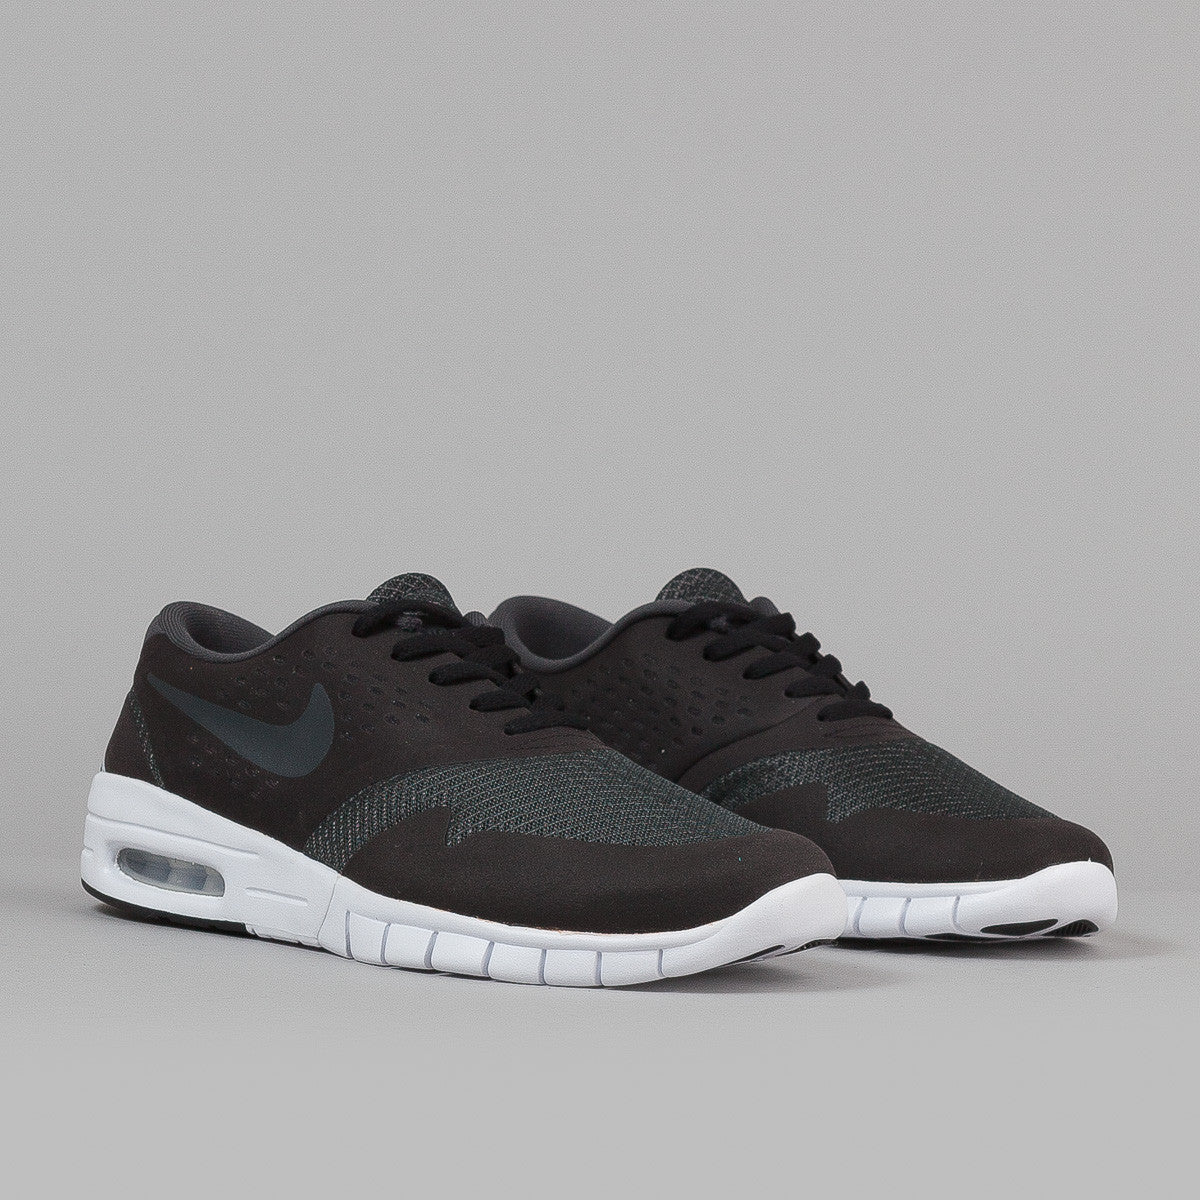 Nike SB Eric Koston 2 Max Black / Anthracite - Wolf Grey